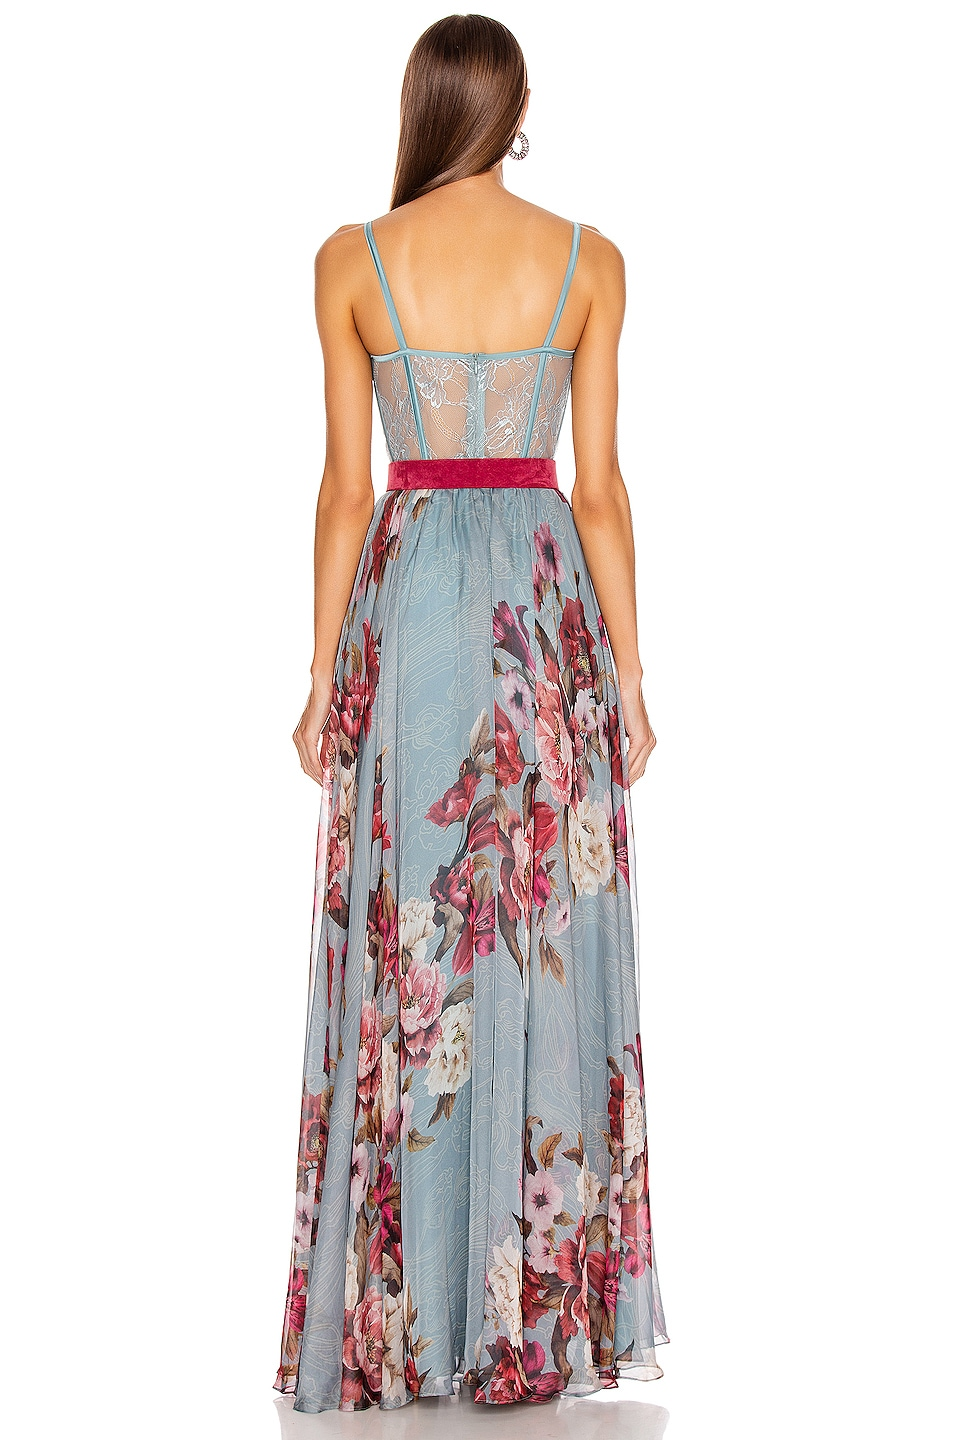 Image 4 of PatBo Peony Print Bustier Maxi Dress With Belt in Soft Blue